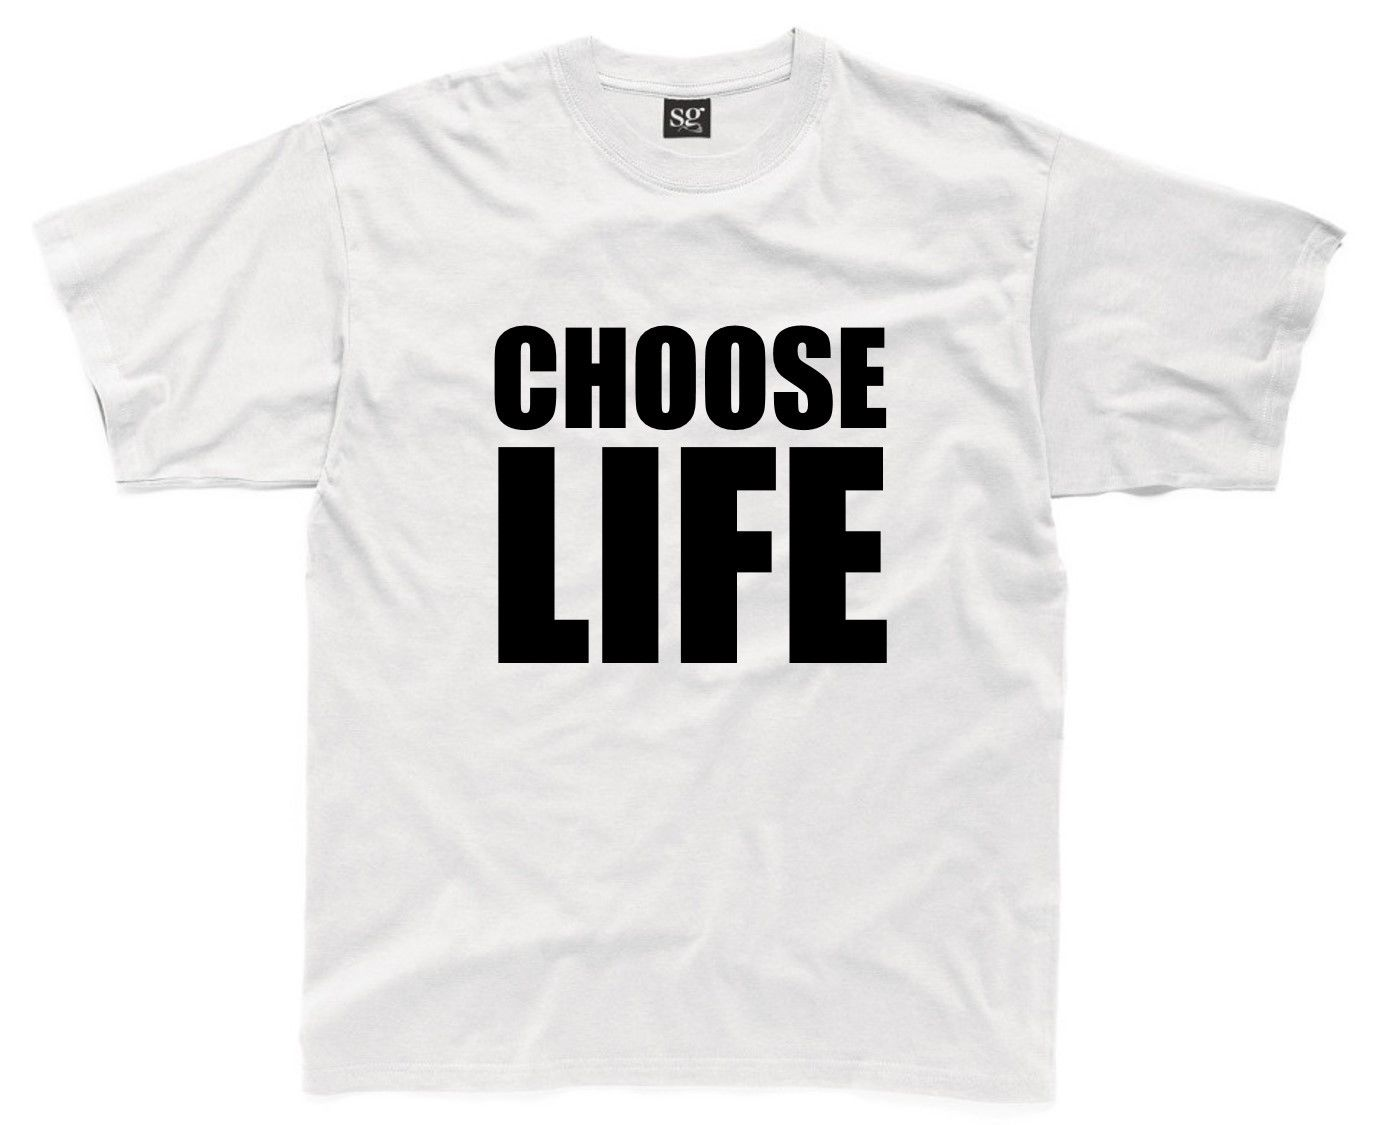 CHOOSE LIFE Mens T-Shirt S-3XL White 80s 80's Party Fancy Dress Costume Outfit New T Shirts Funny Tops Tee New free shipping